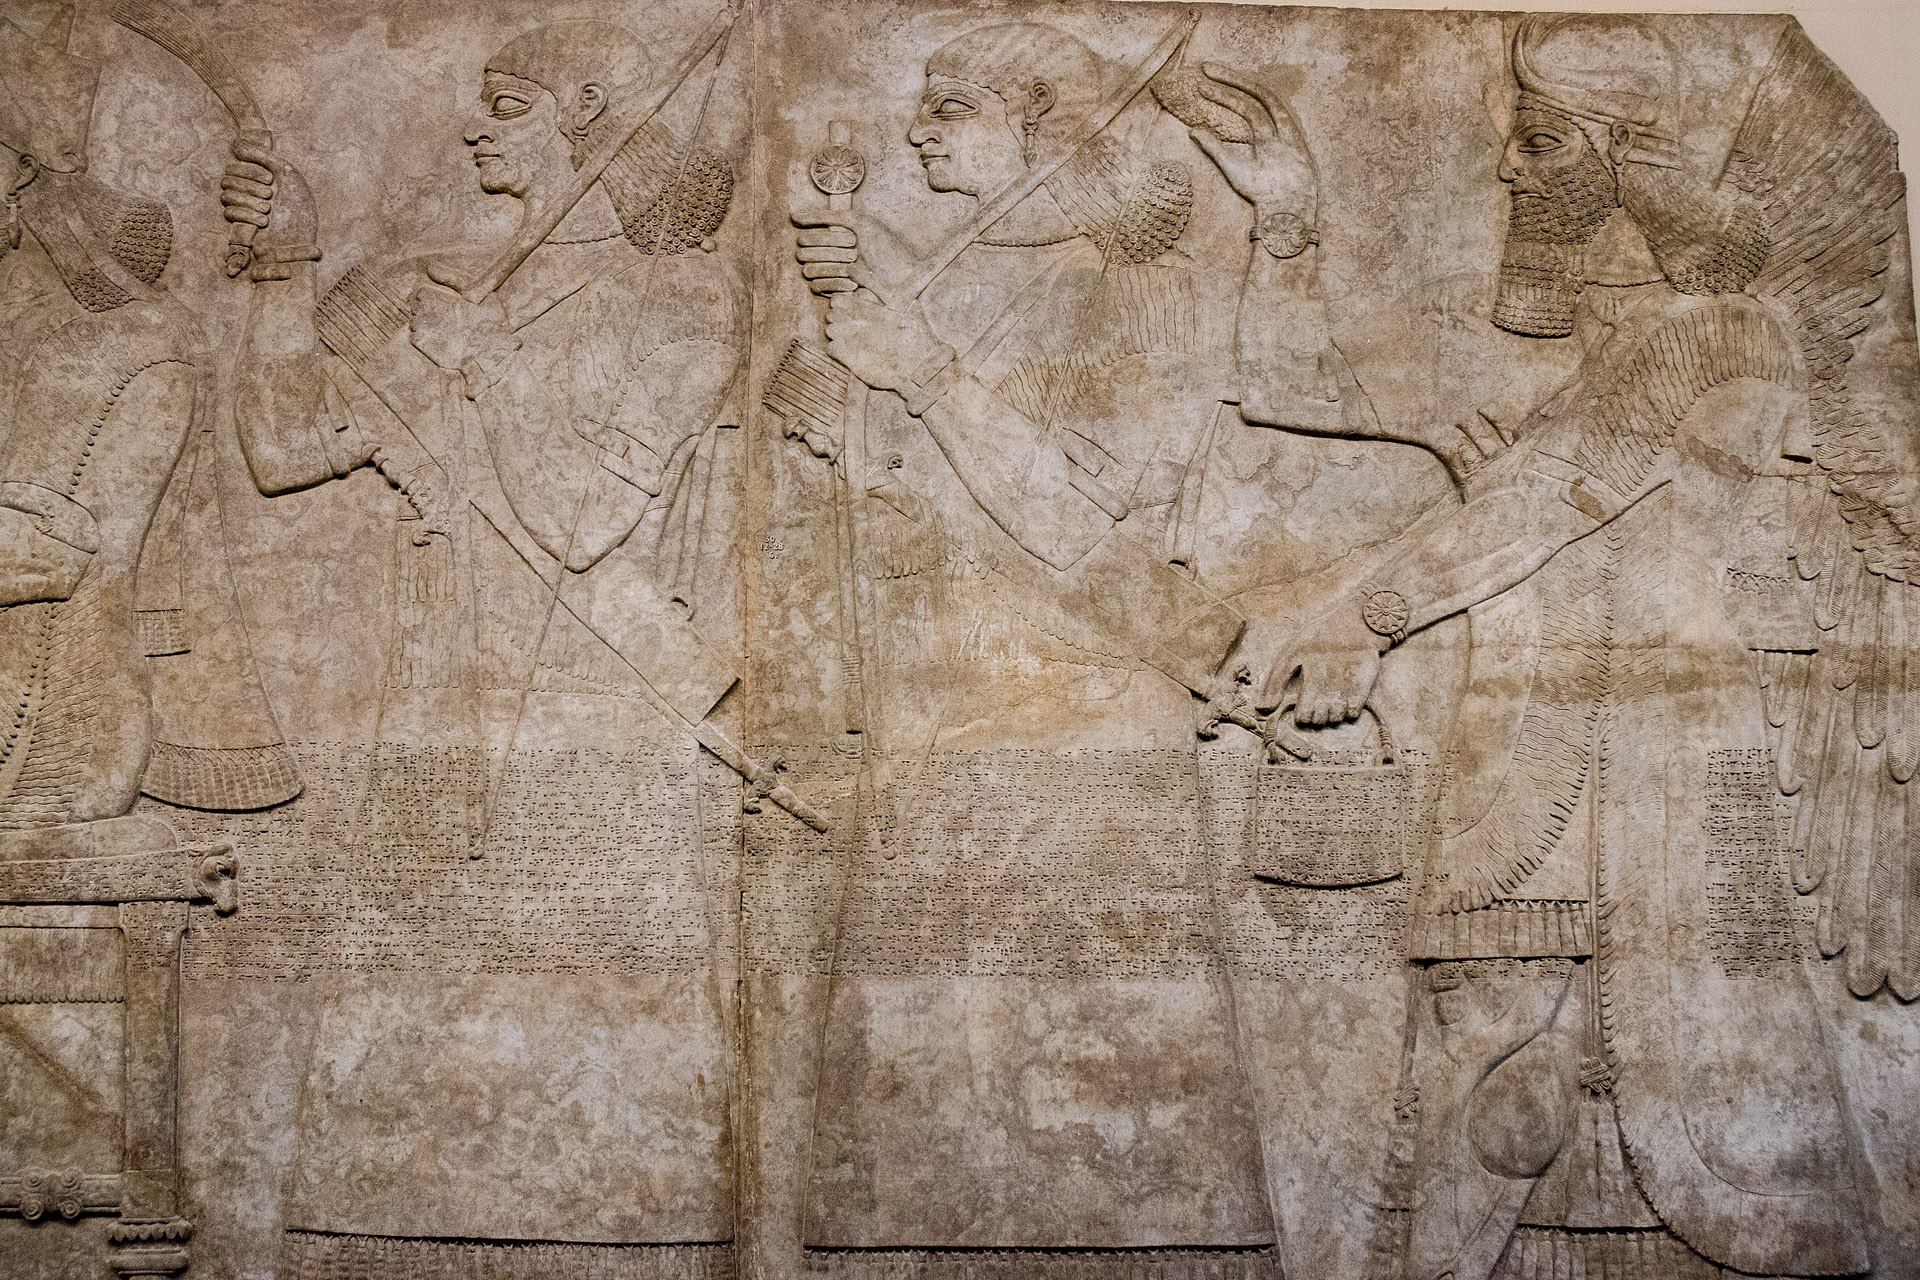 Assyrian reliefs (Palace at Nimrud (Iraq), 883-859 BC)